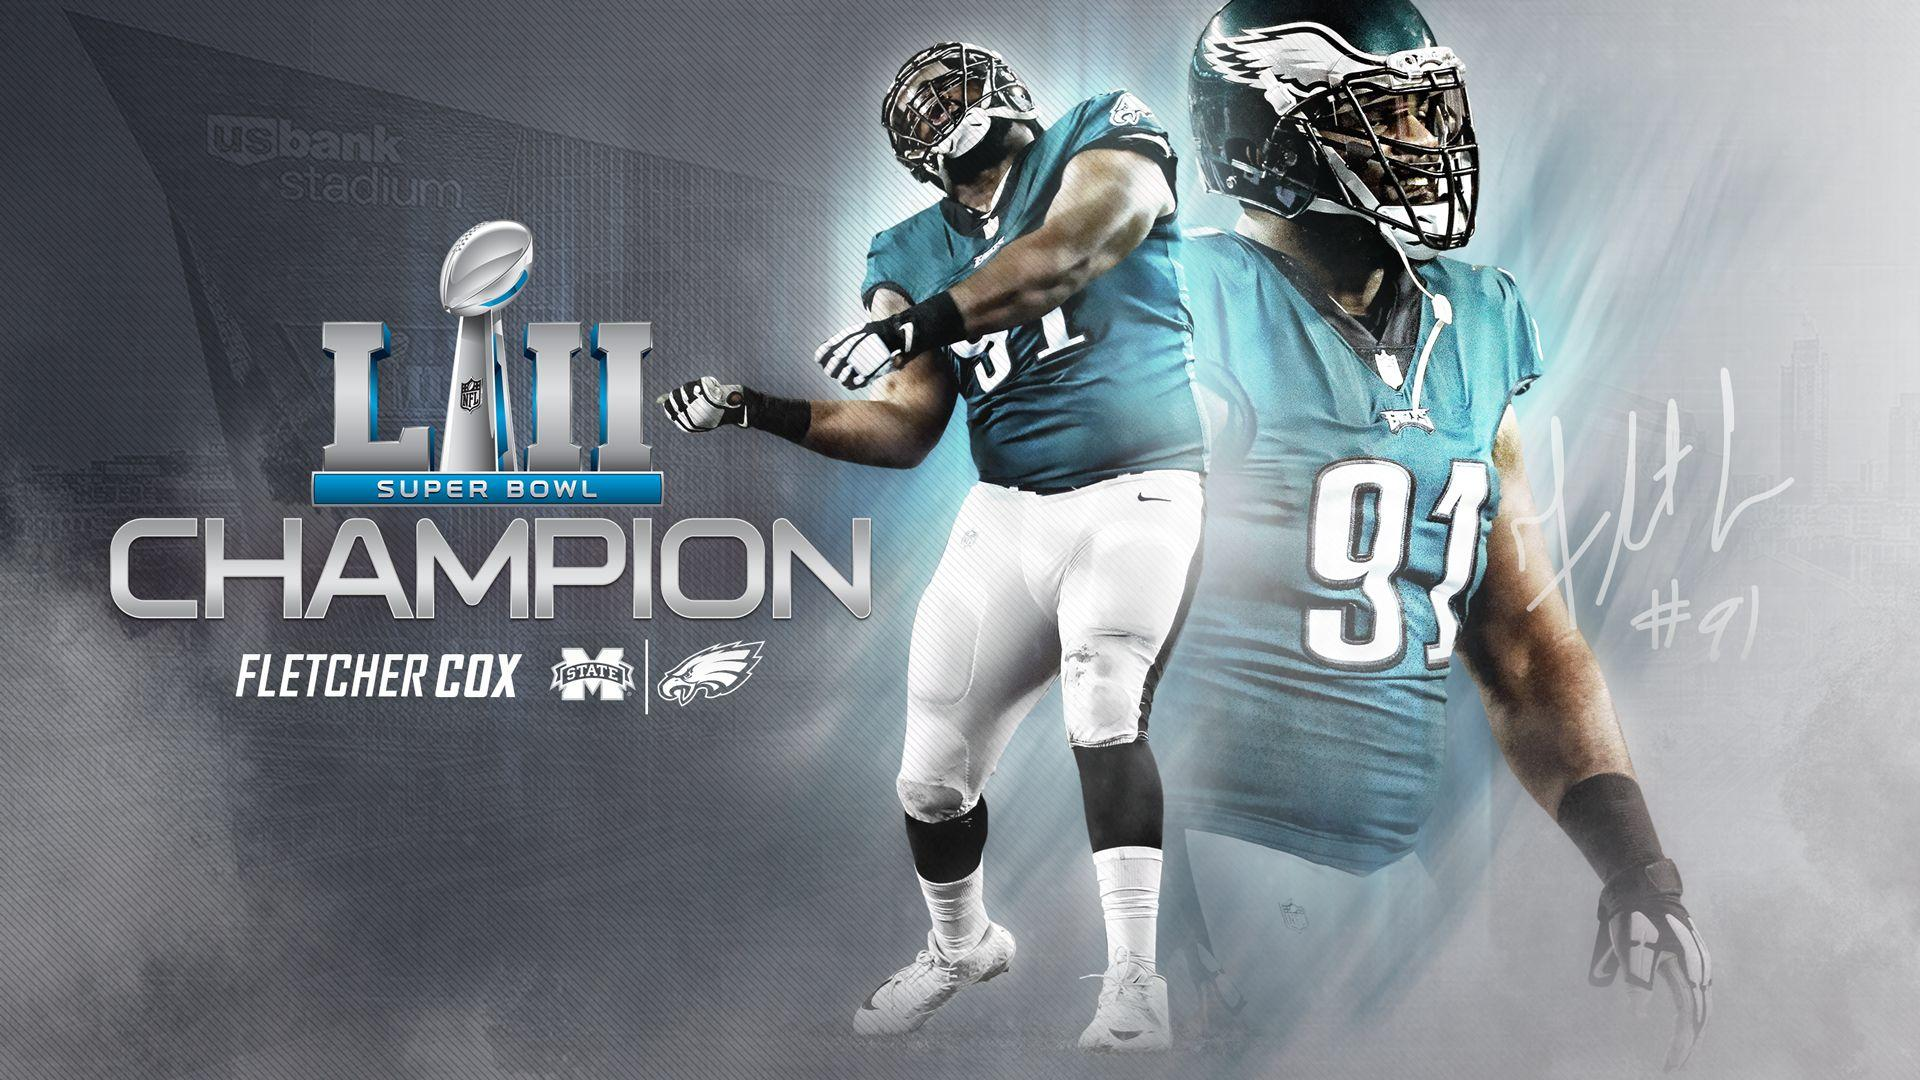 From State to Super Bowl: Fletcher Cox Crowned Super Bowl Champion ...